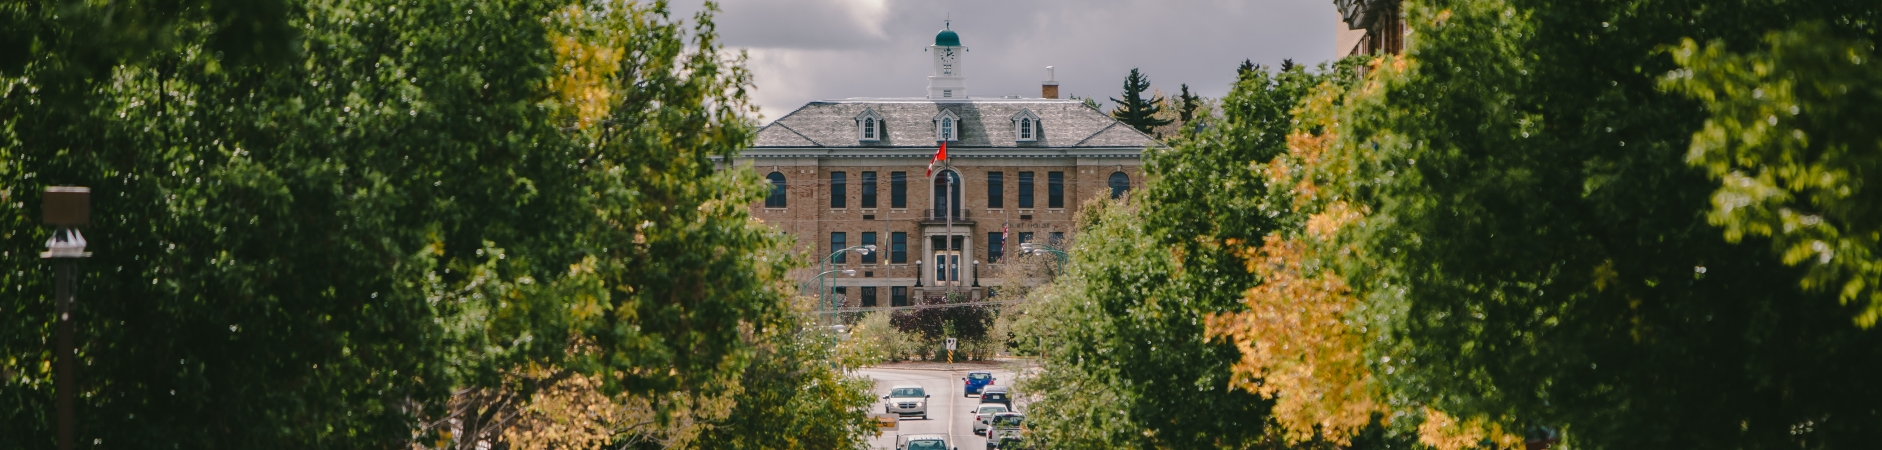 View of courthouse up on a hill